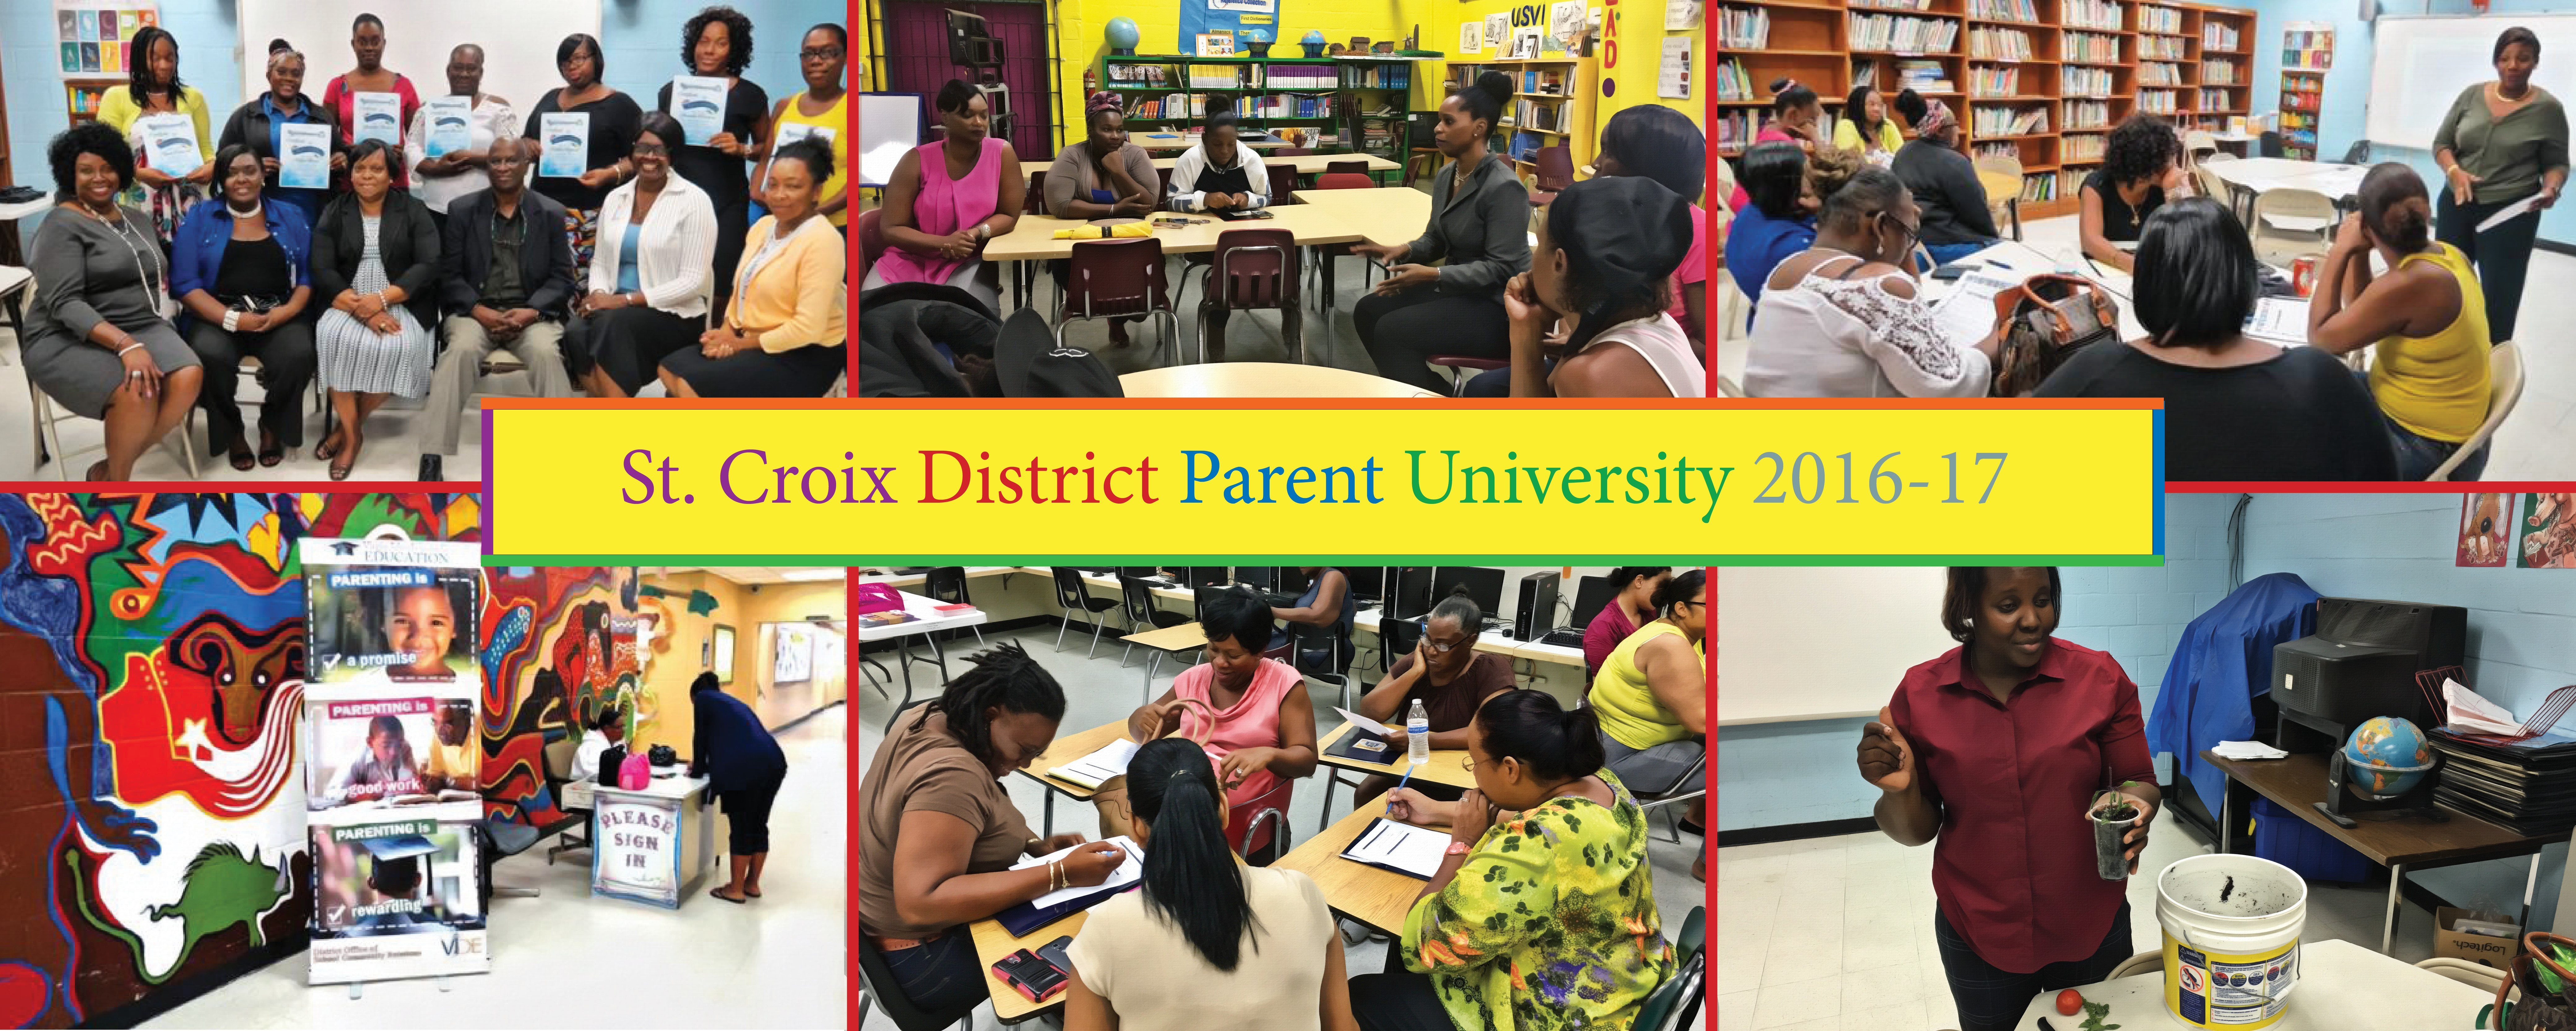 STX Parent University Encourages Greater Family Involvement